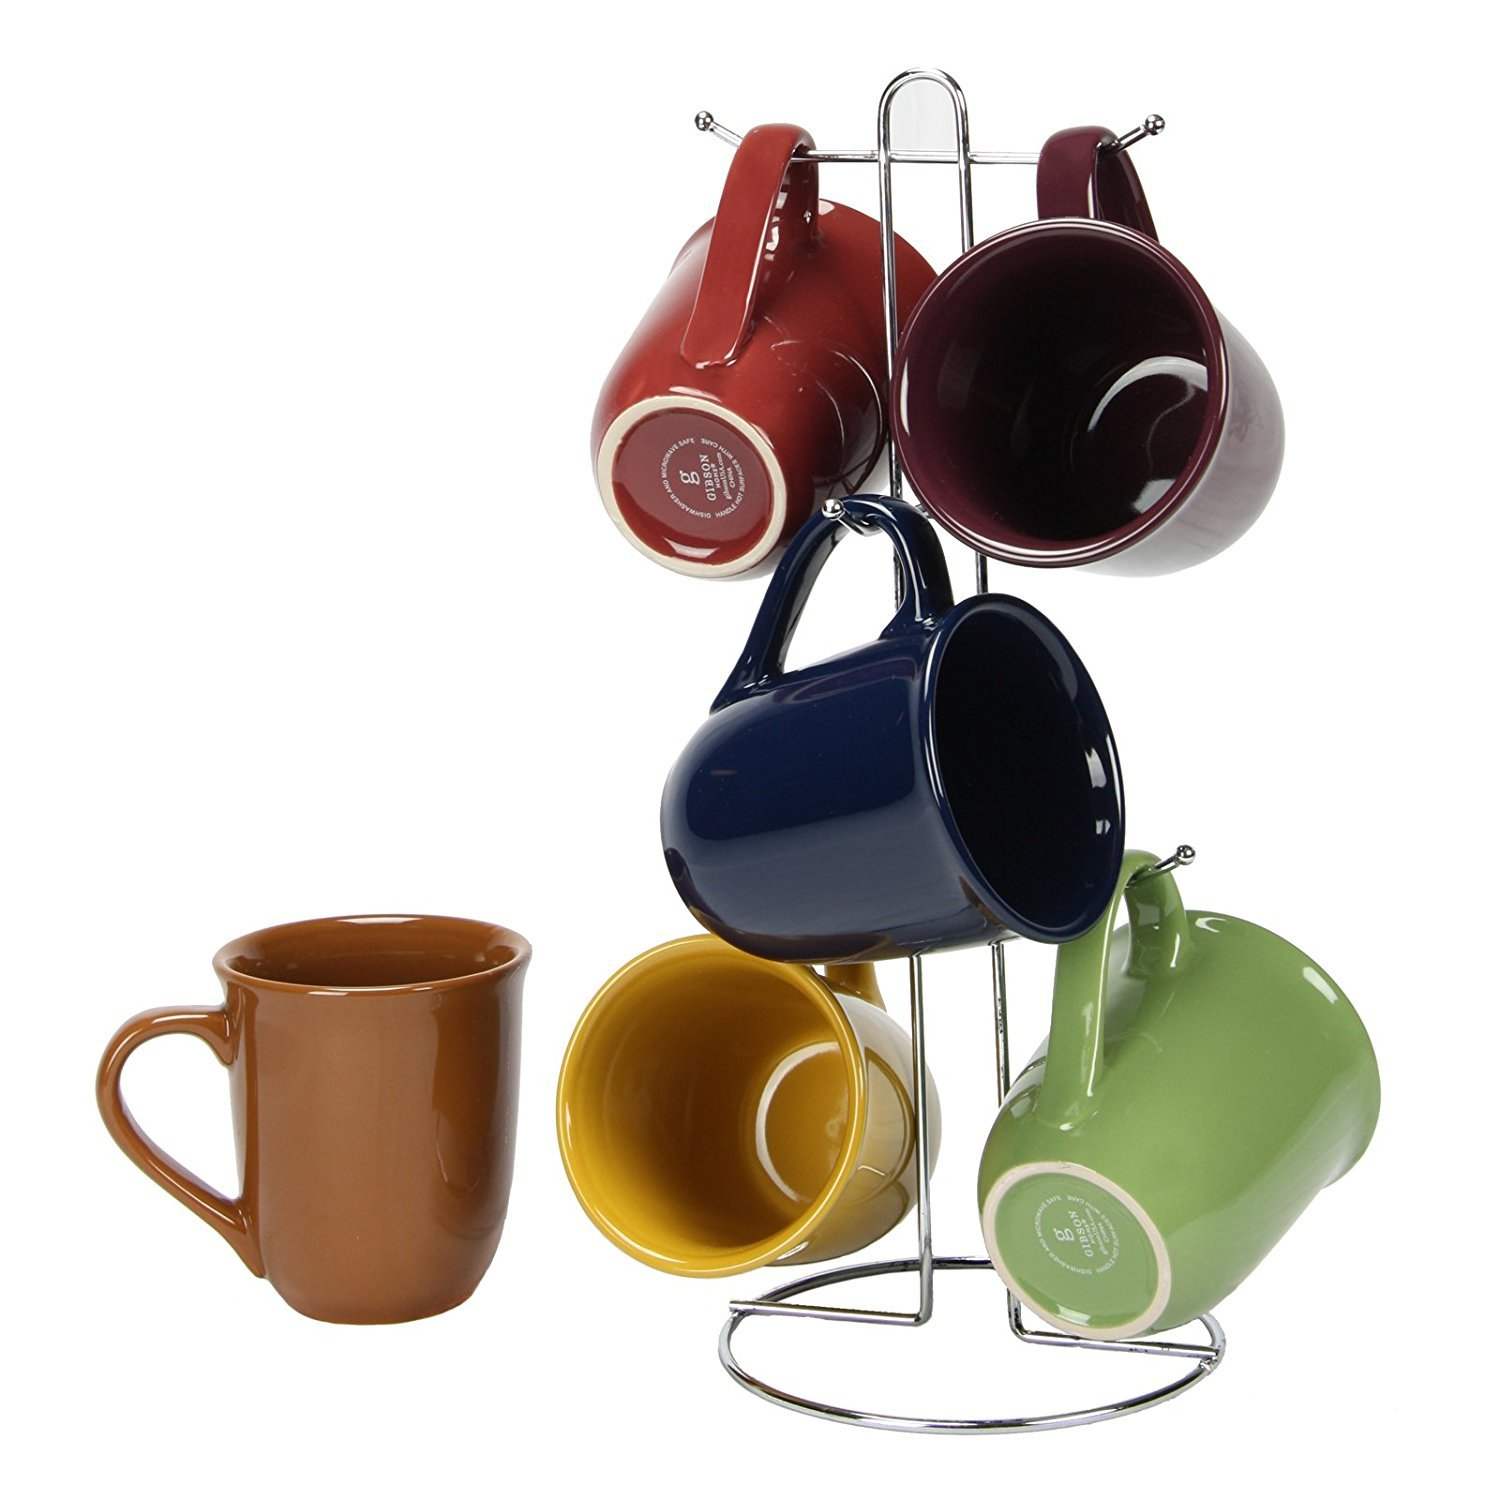 Coffee Cup Set by GIBSON Coffee Mug Set Stoneware Coffee Cups with Metal Rack Wire Holder Assorted Colors 7 pcs set, Cafe Amaretto by Gibson Home (Image #1)